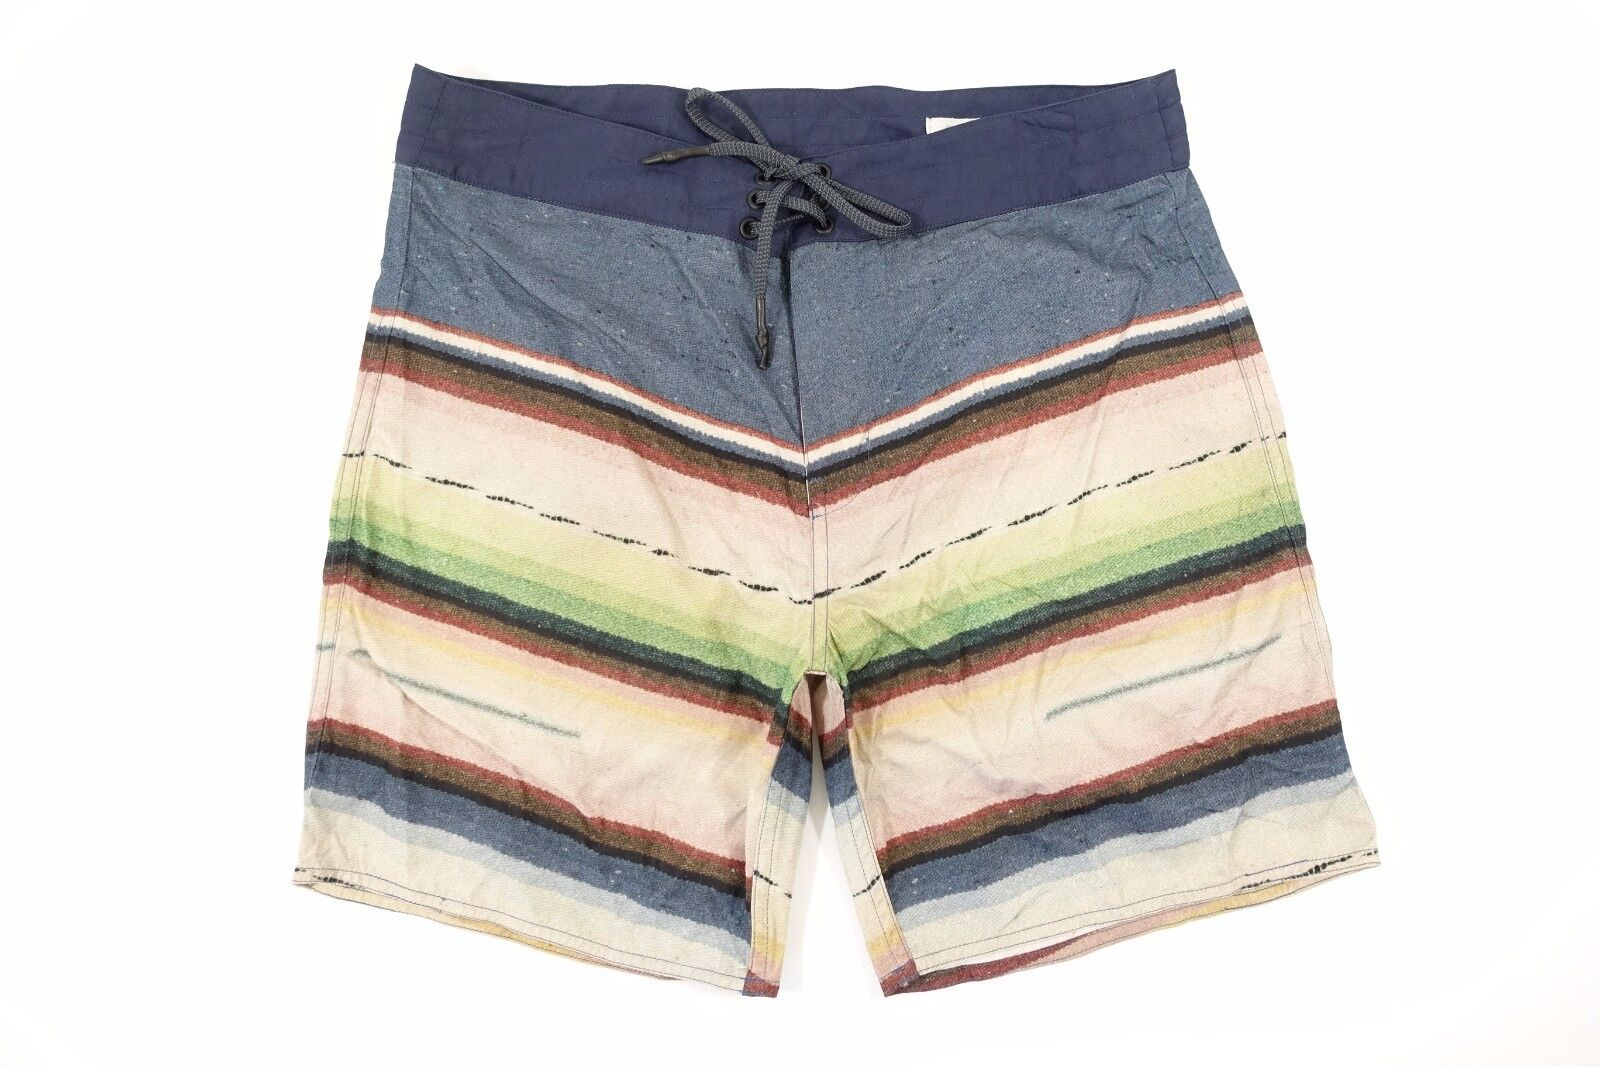 OUTERKOWN ECONYL EVOLUTION TRUNK STRIPED blueE 30 SWIM SURF BOARD SHORTS MENS NWT